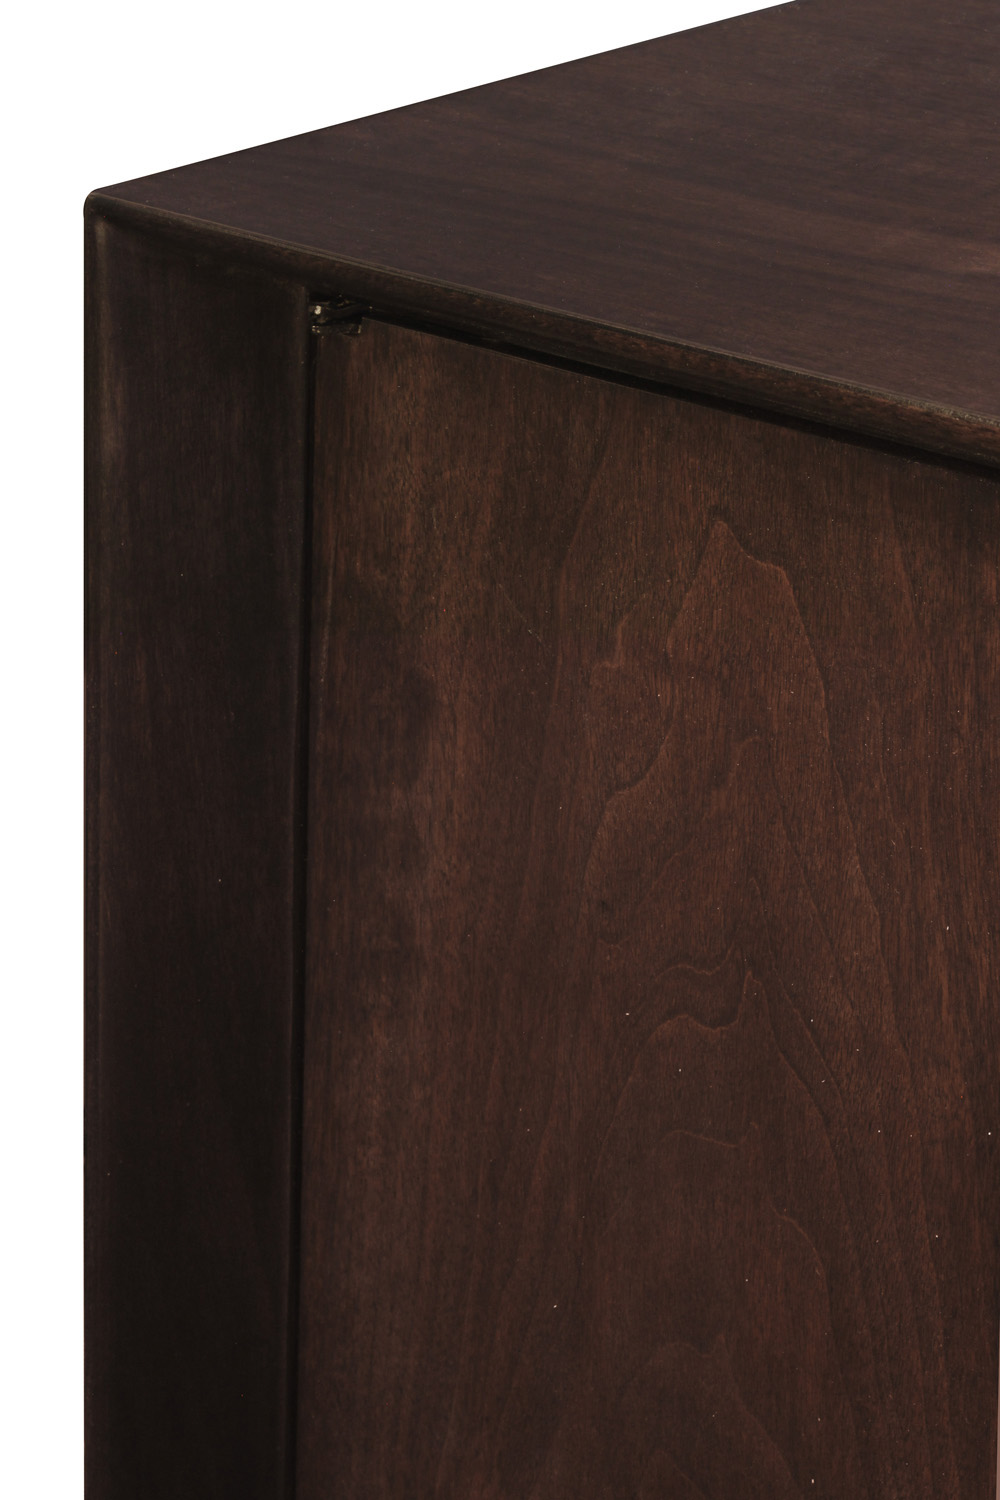 Gibbings 150 3 doors framedout commode45 detail7 hires.jpg